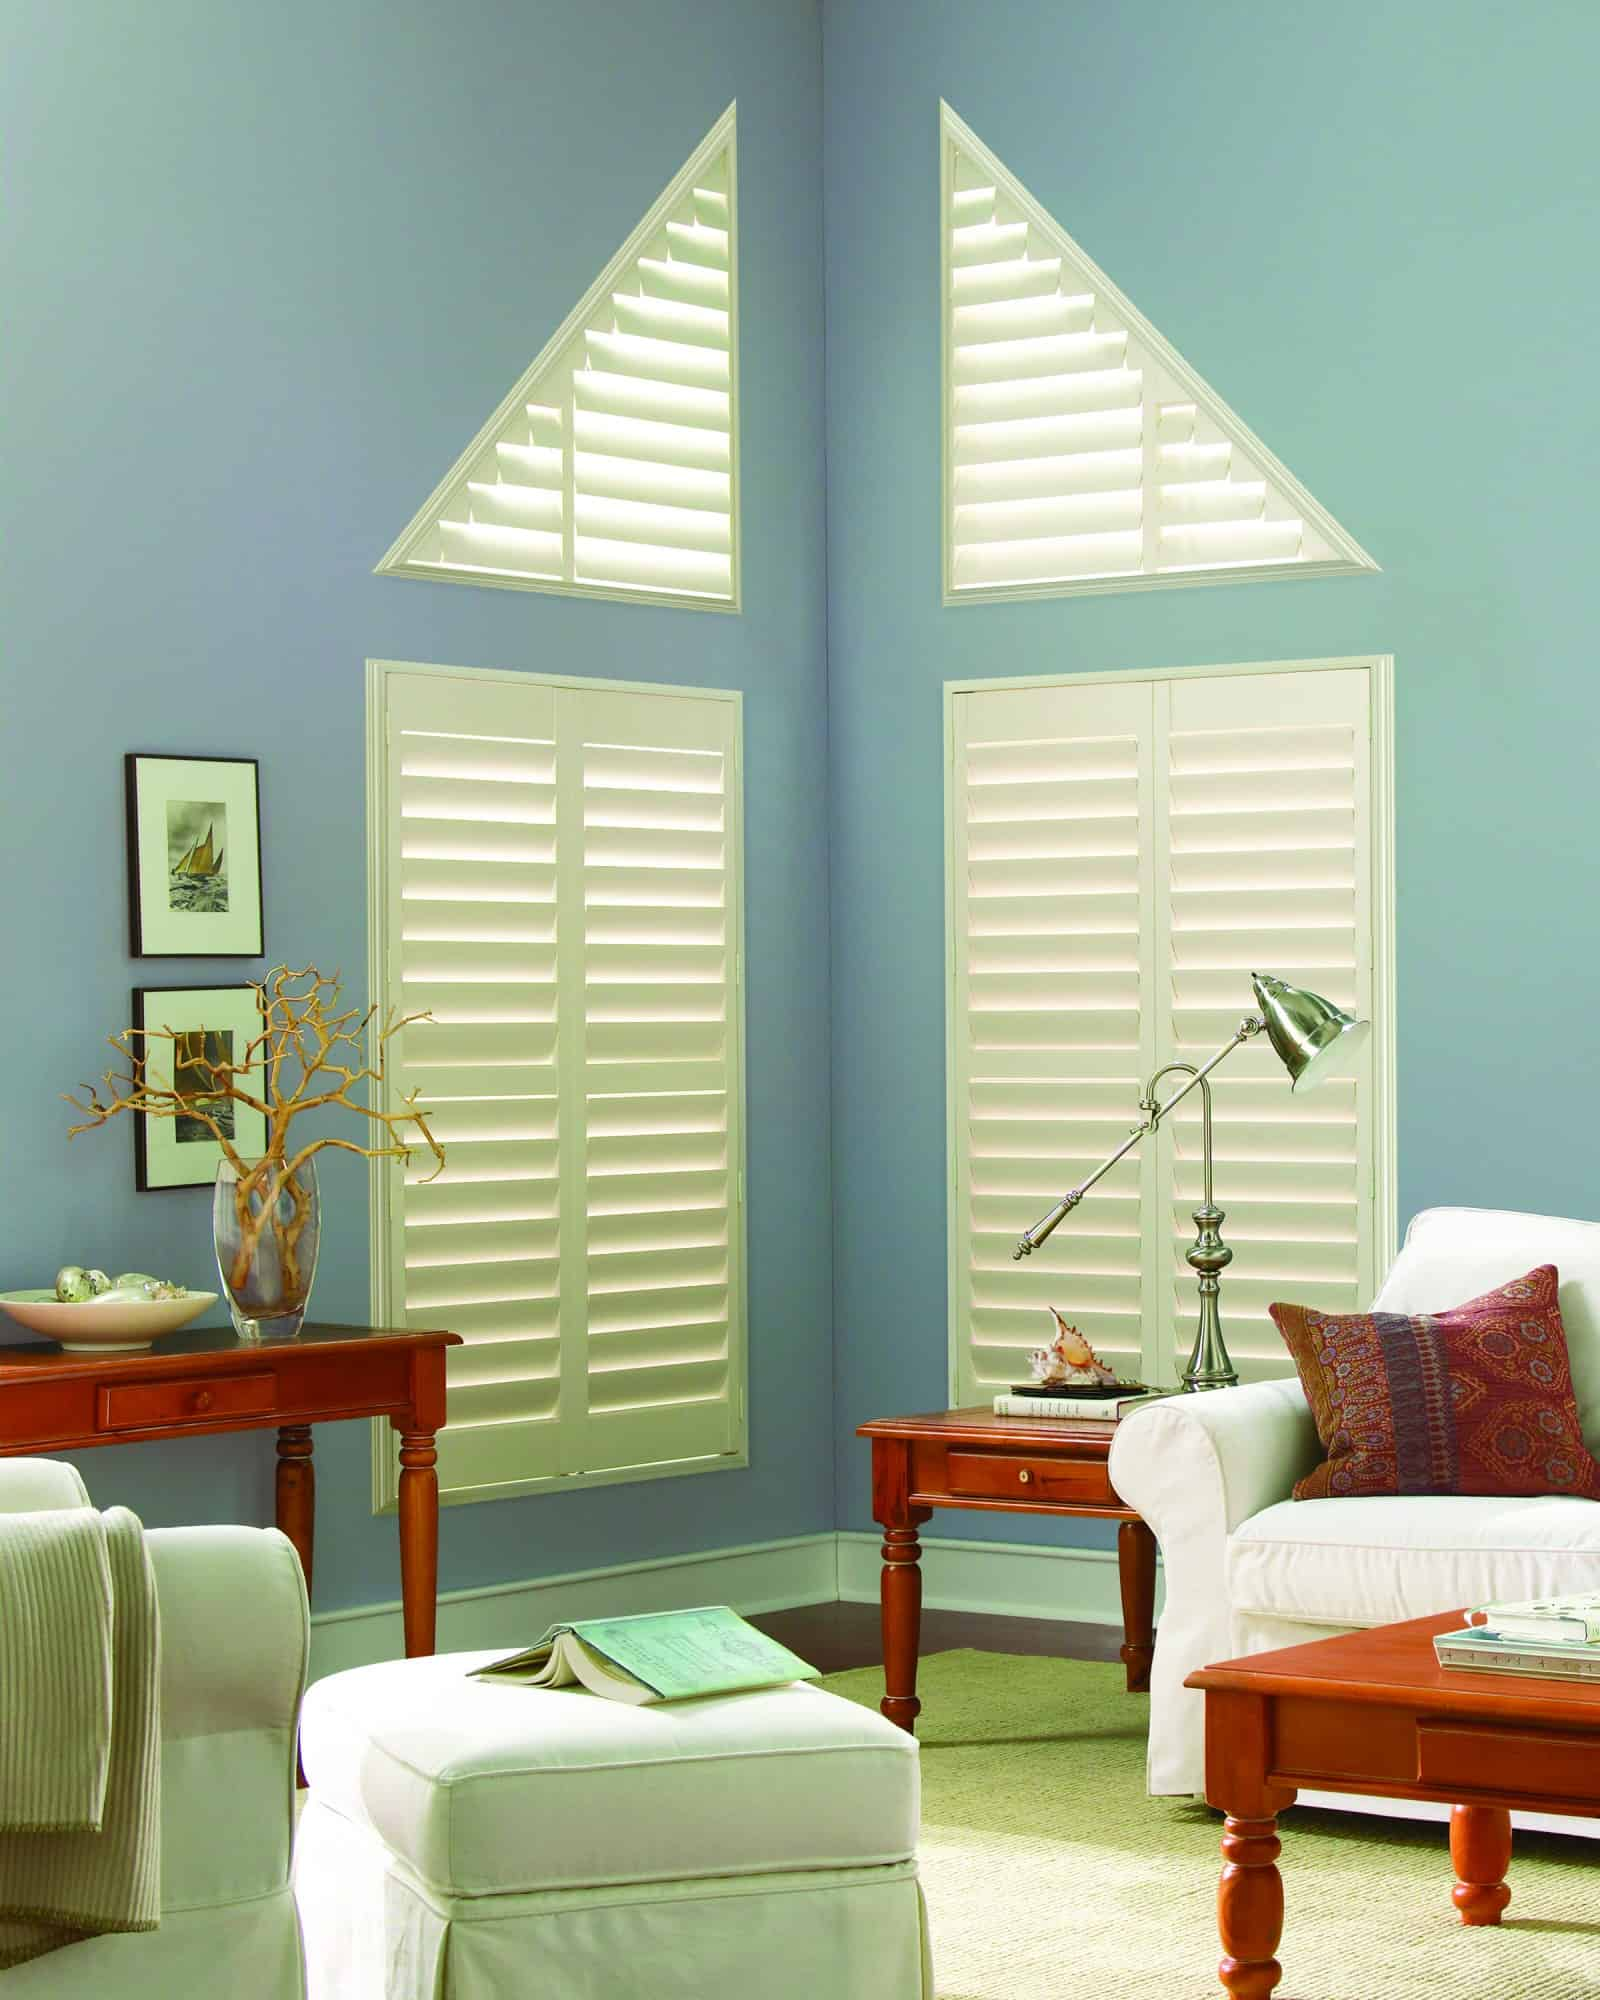 Luxaflex Faux Wood Shutter_Angled_lounge_pale blue walls